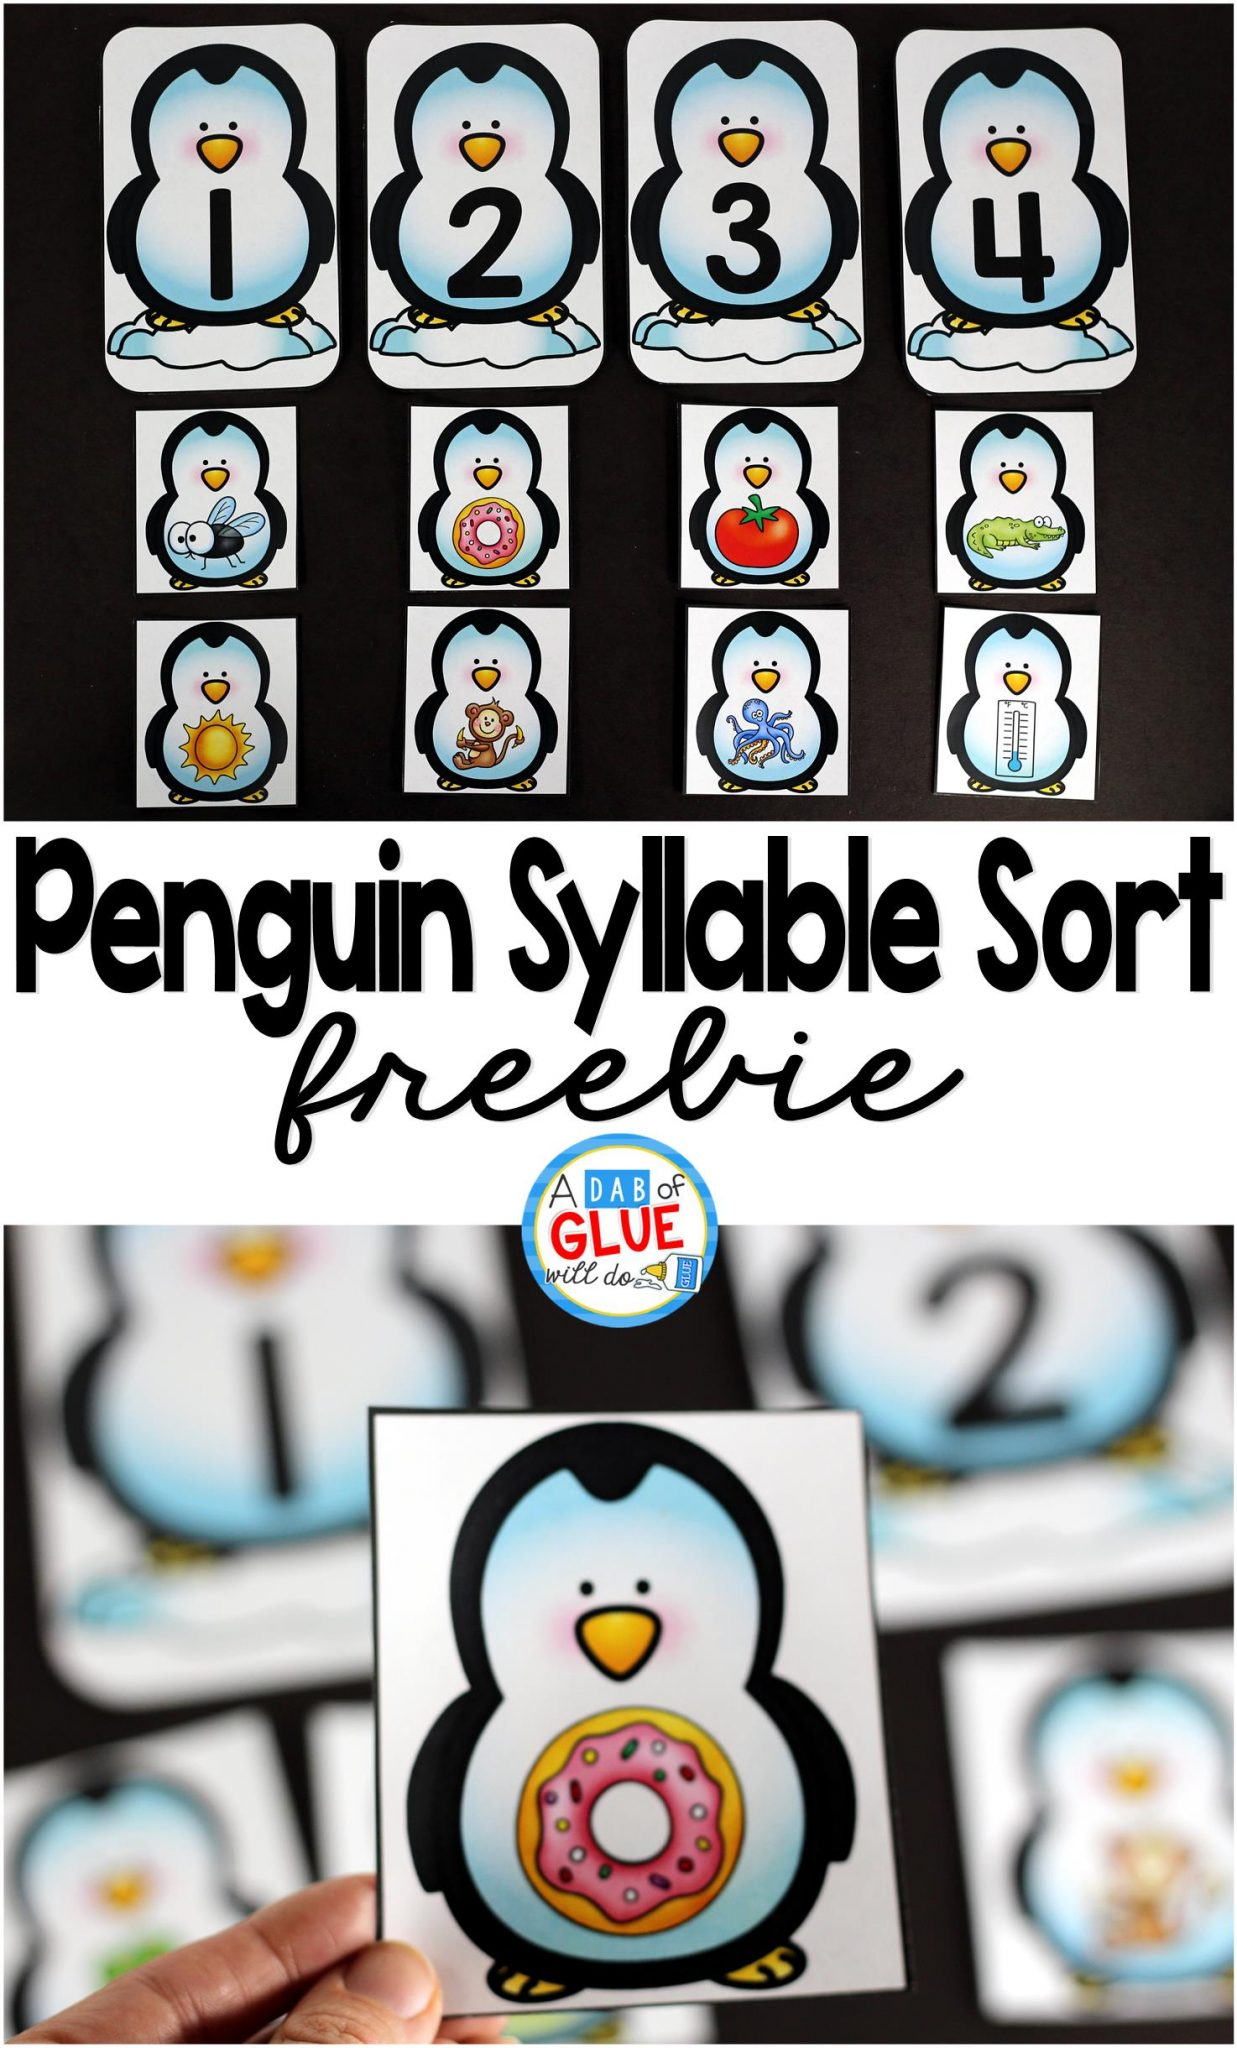 Penguin Syllable Sort Printable